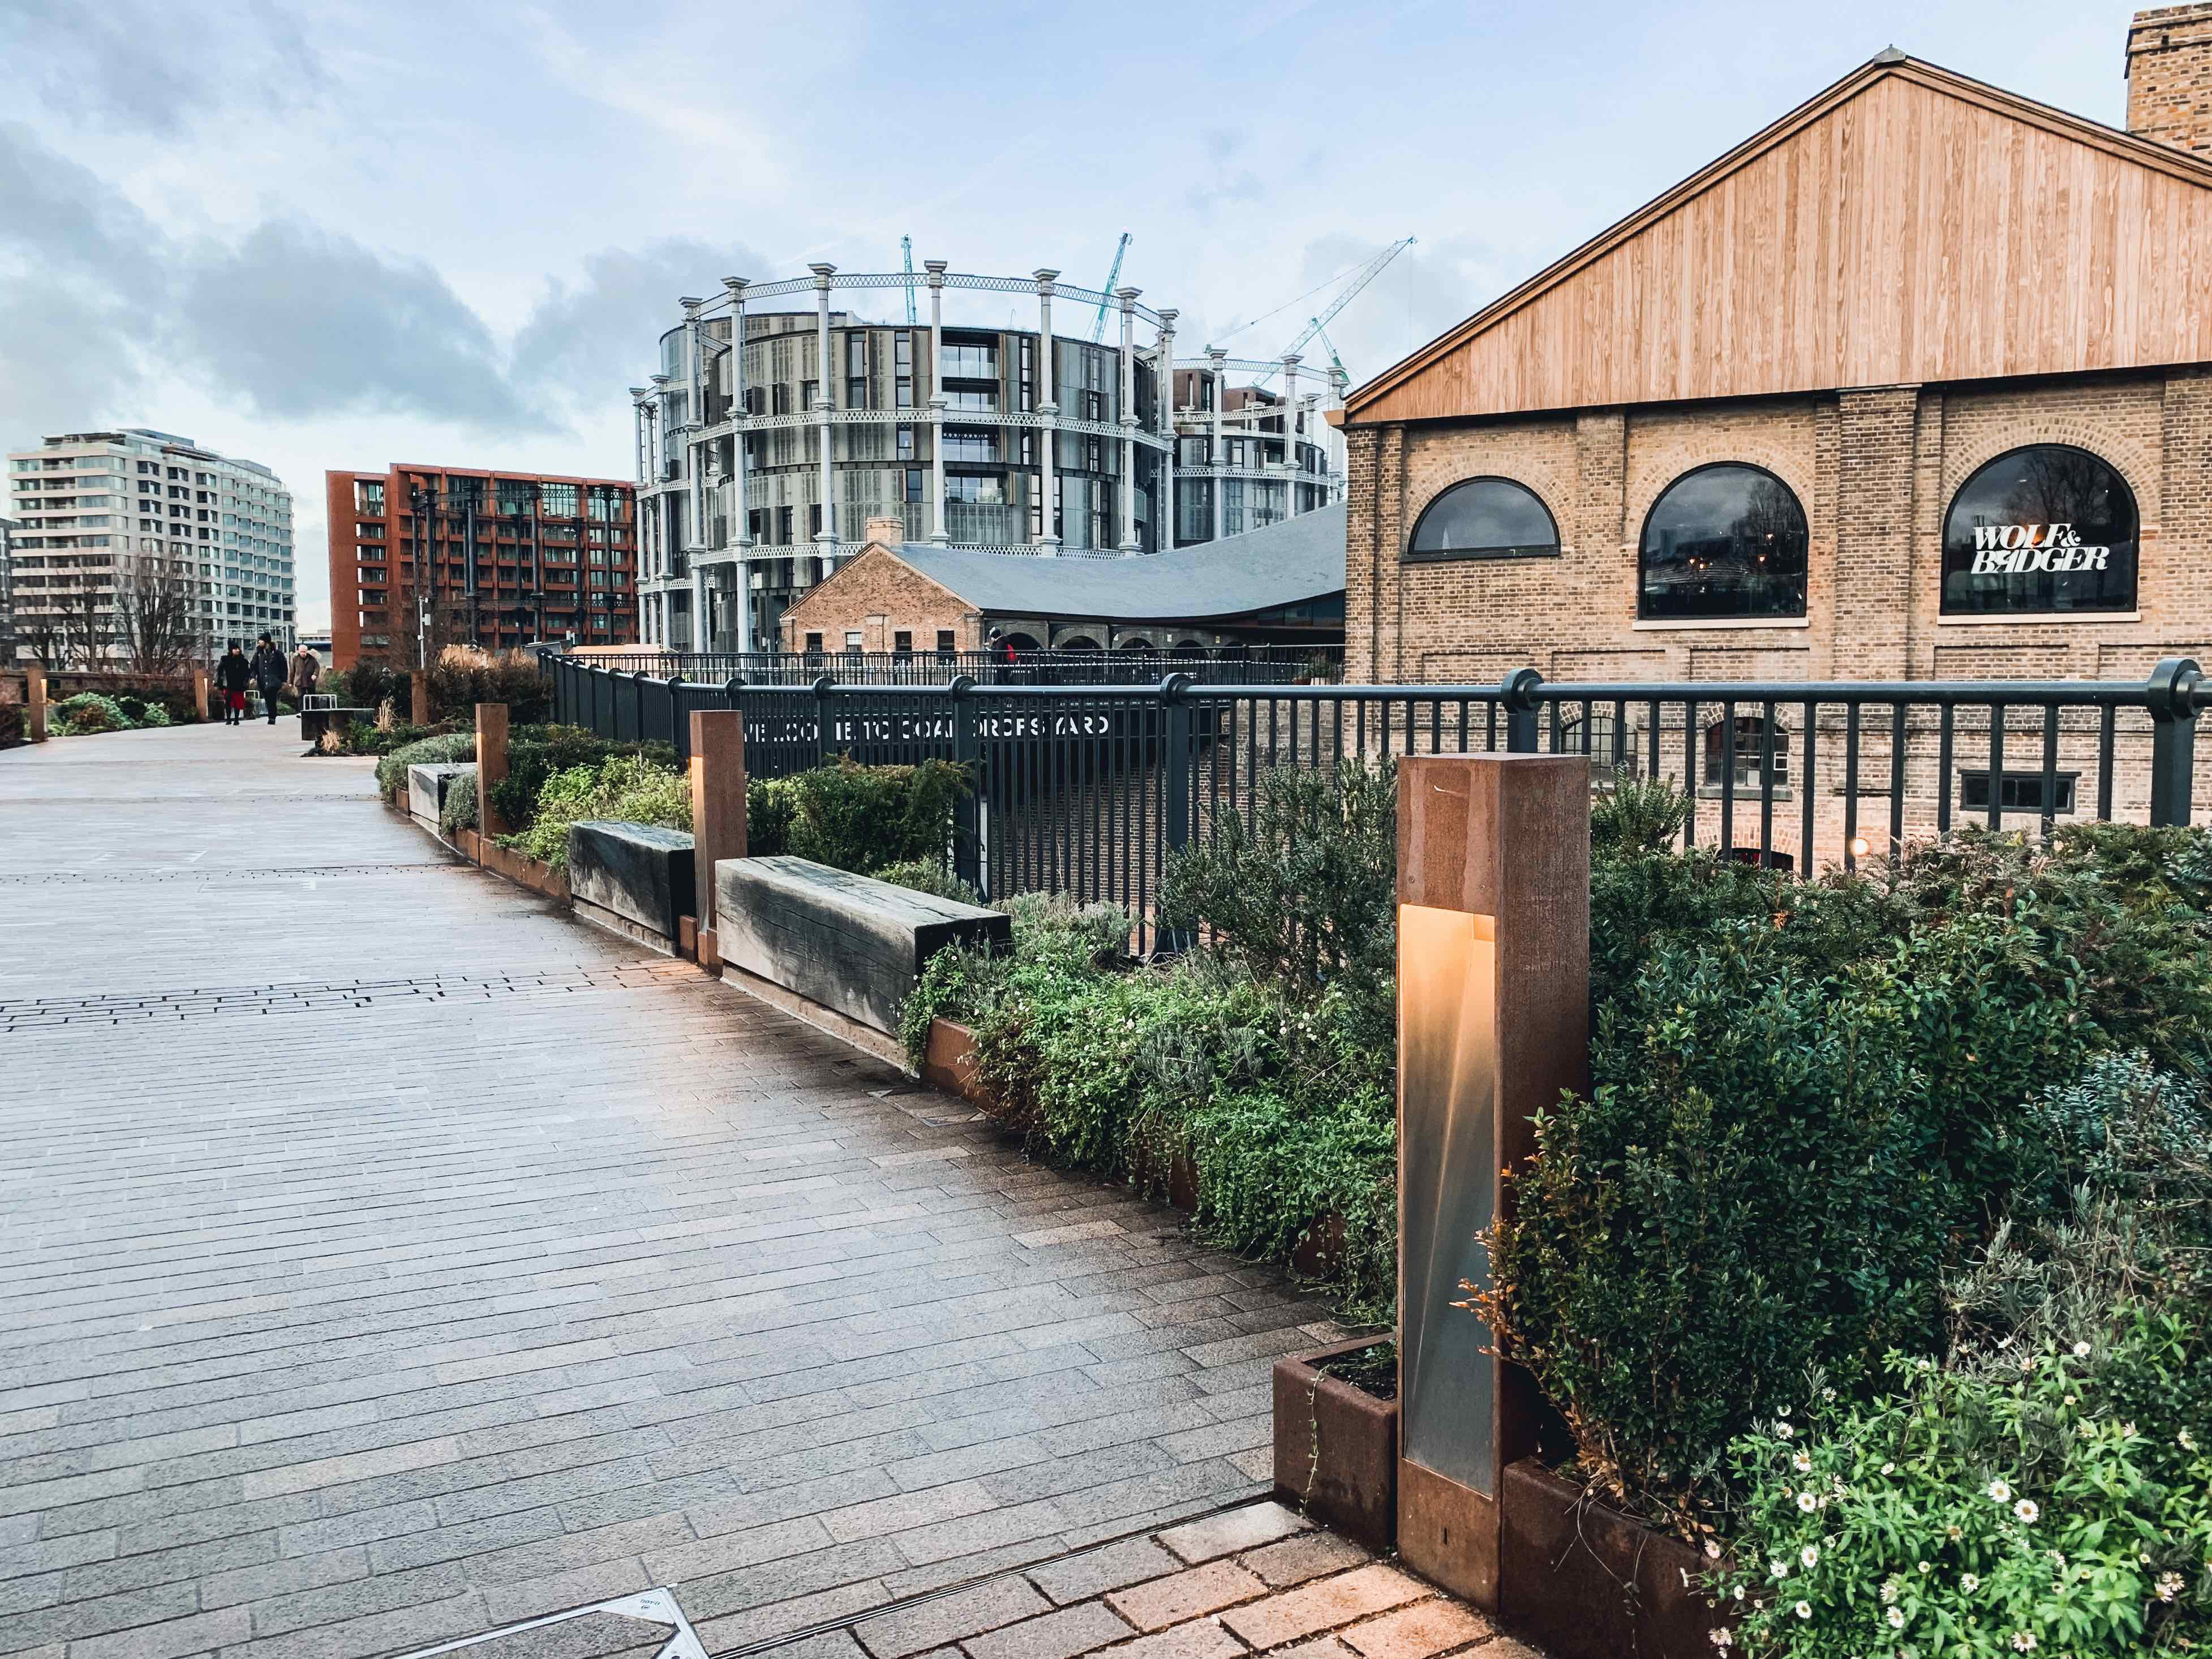 A view of a walkway taking visitors past the Coal Drops Yard to the Gasholders apartment complexes and on along the Regent's Canal Towpath. The vibe is very New York City 'Highline'-esque. The inclusion of vegetation works well with the brick and steel constructions surrounding the place.